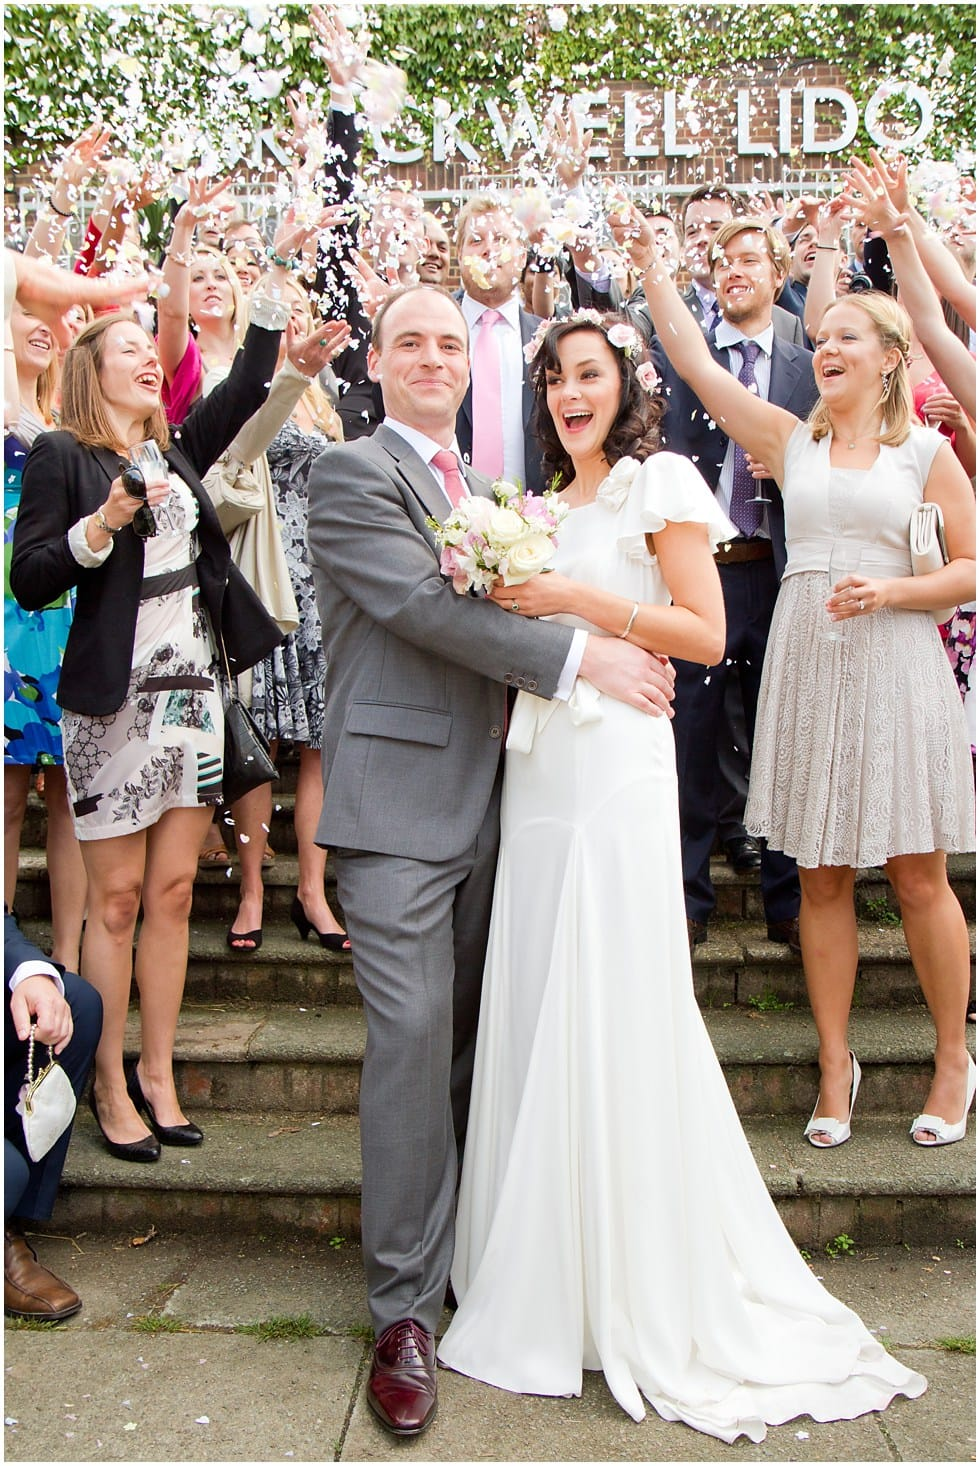 The moment the confetti is thrown at the bride and groom Herne Hill Wedding